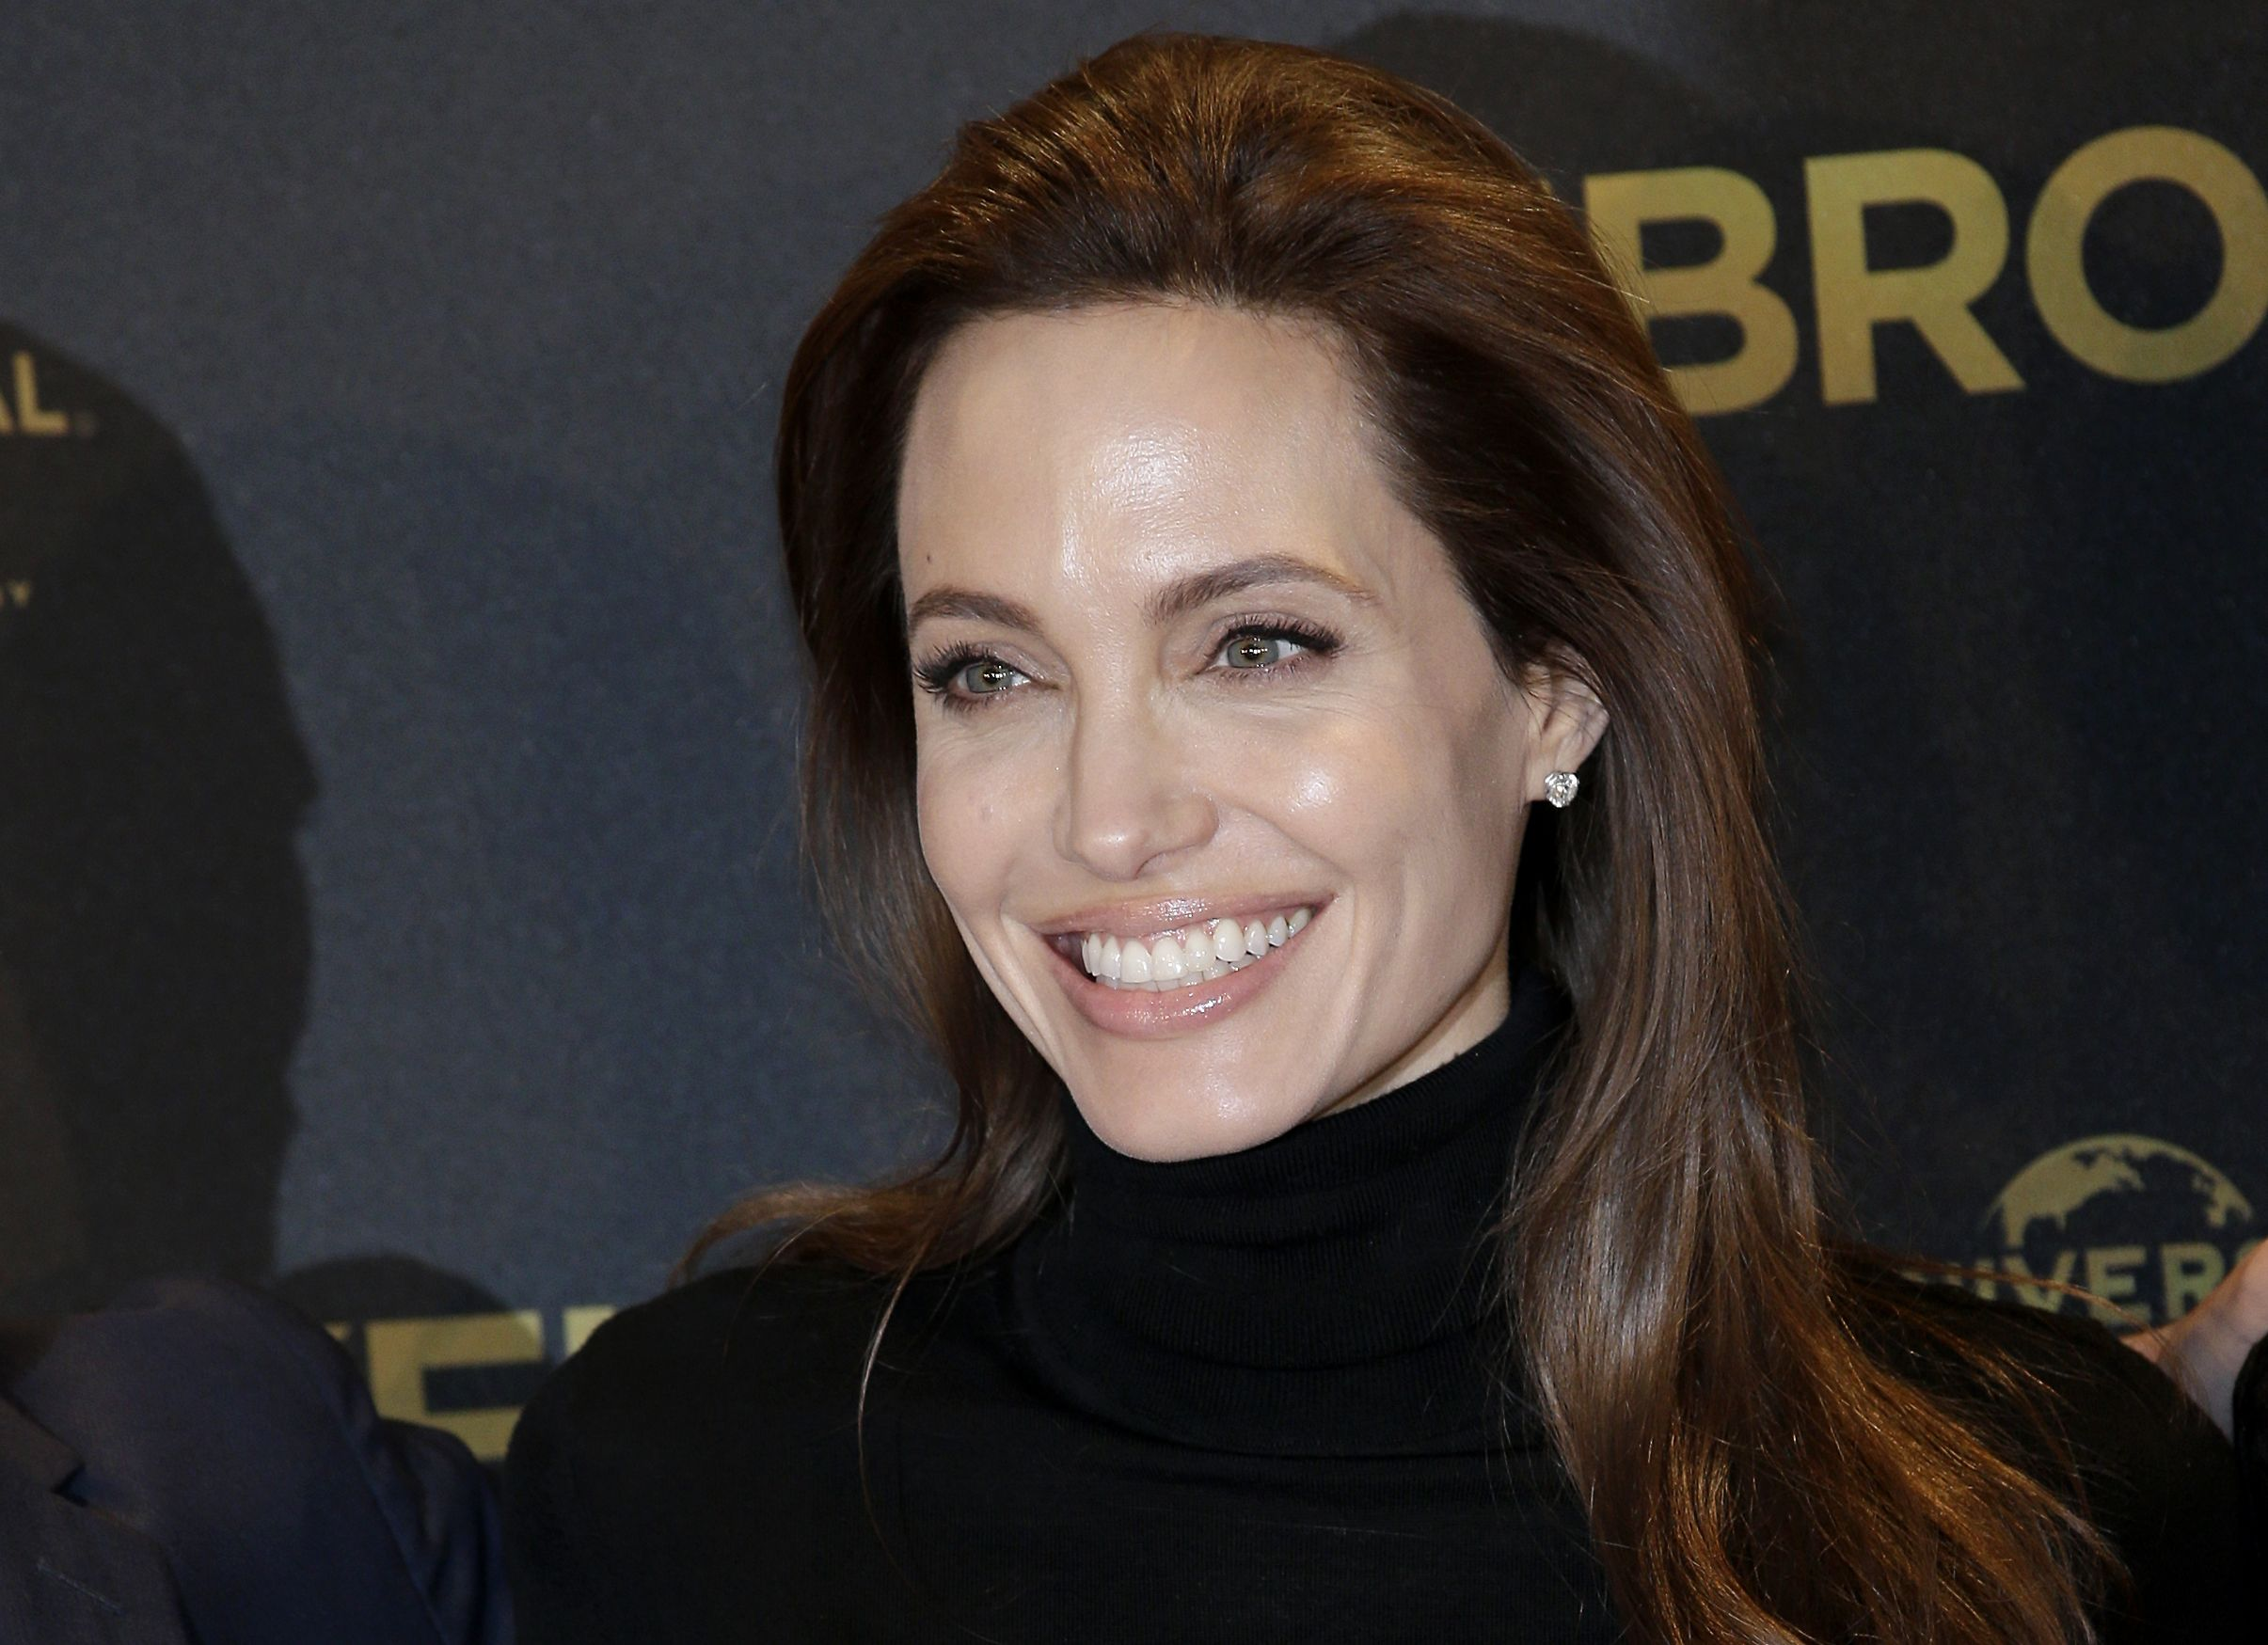 Angelina Jolie: Angelina Jolie Wallpapers, Pictures, Images